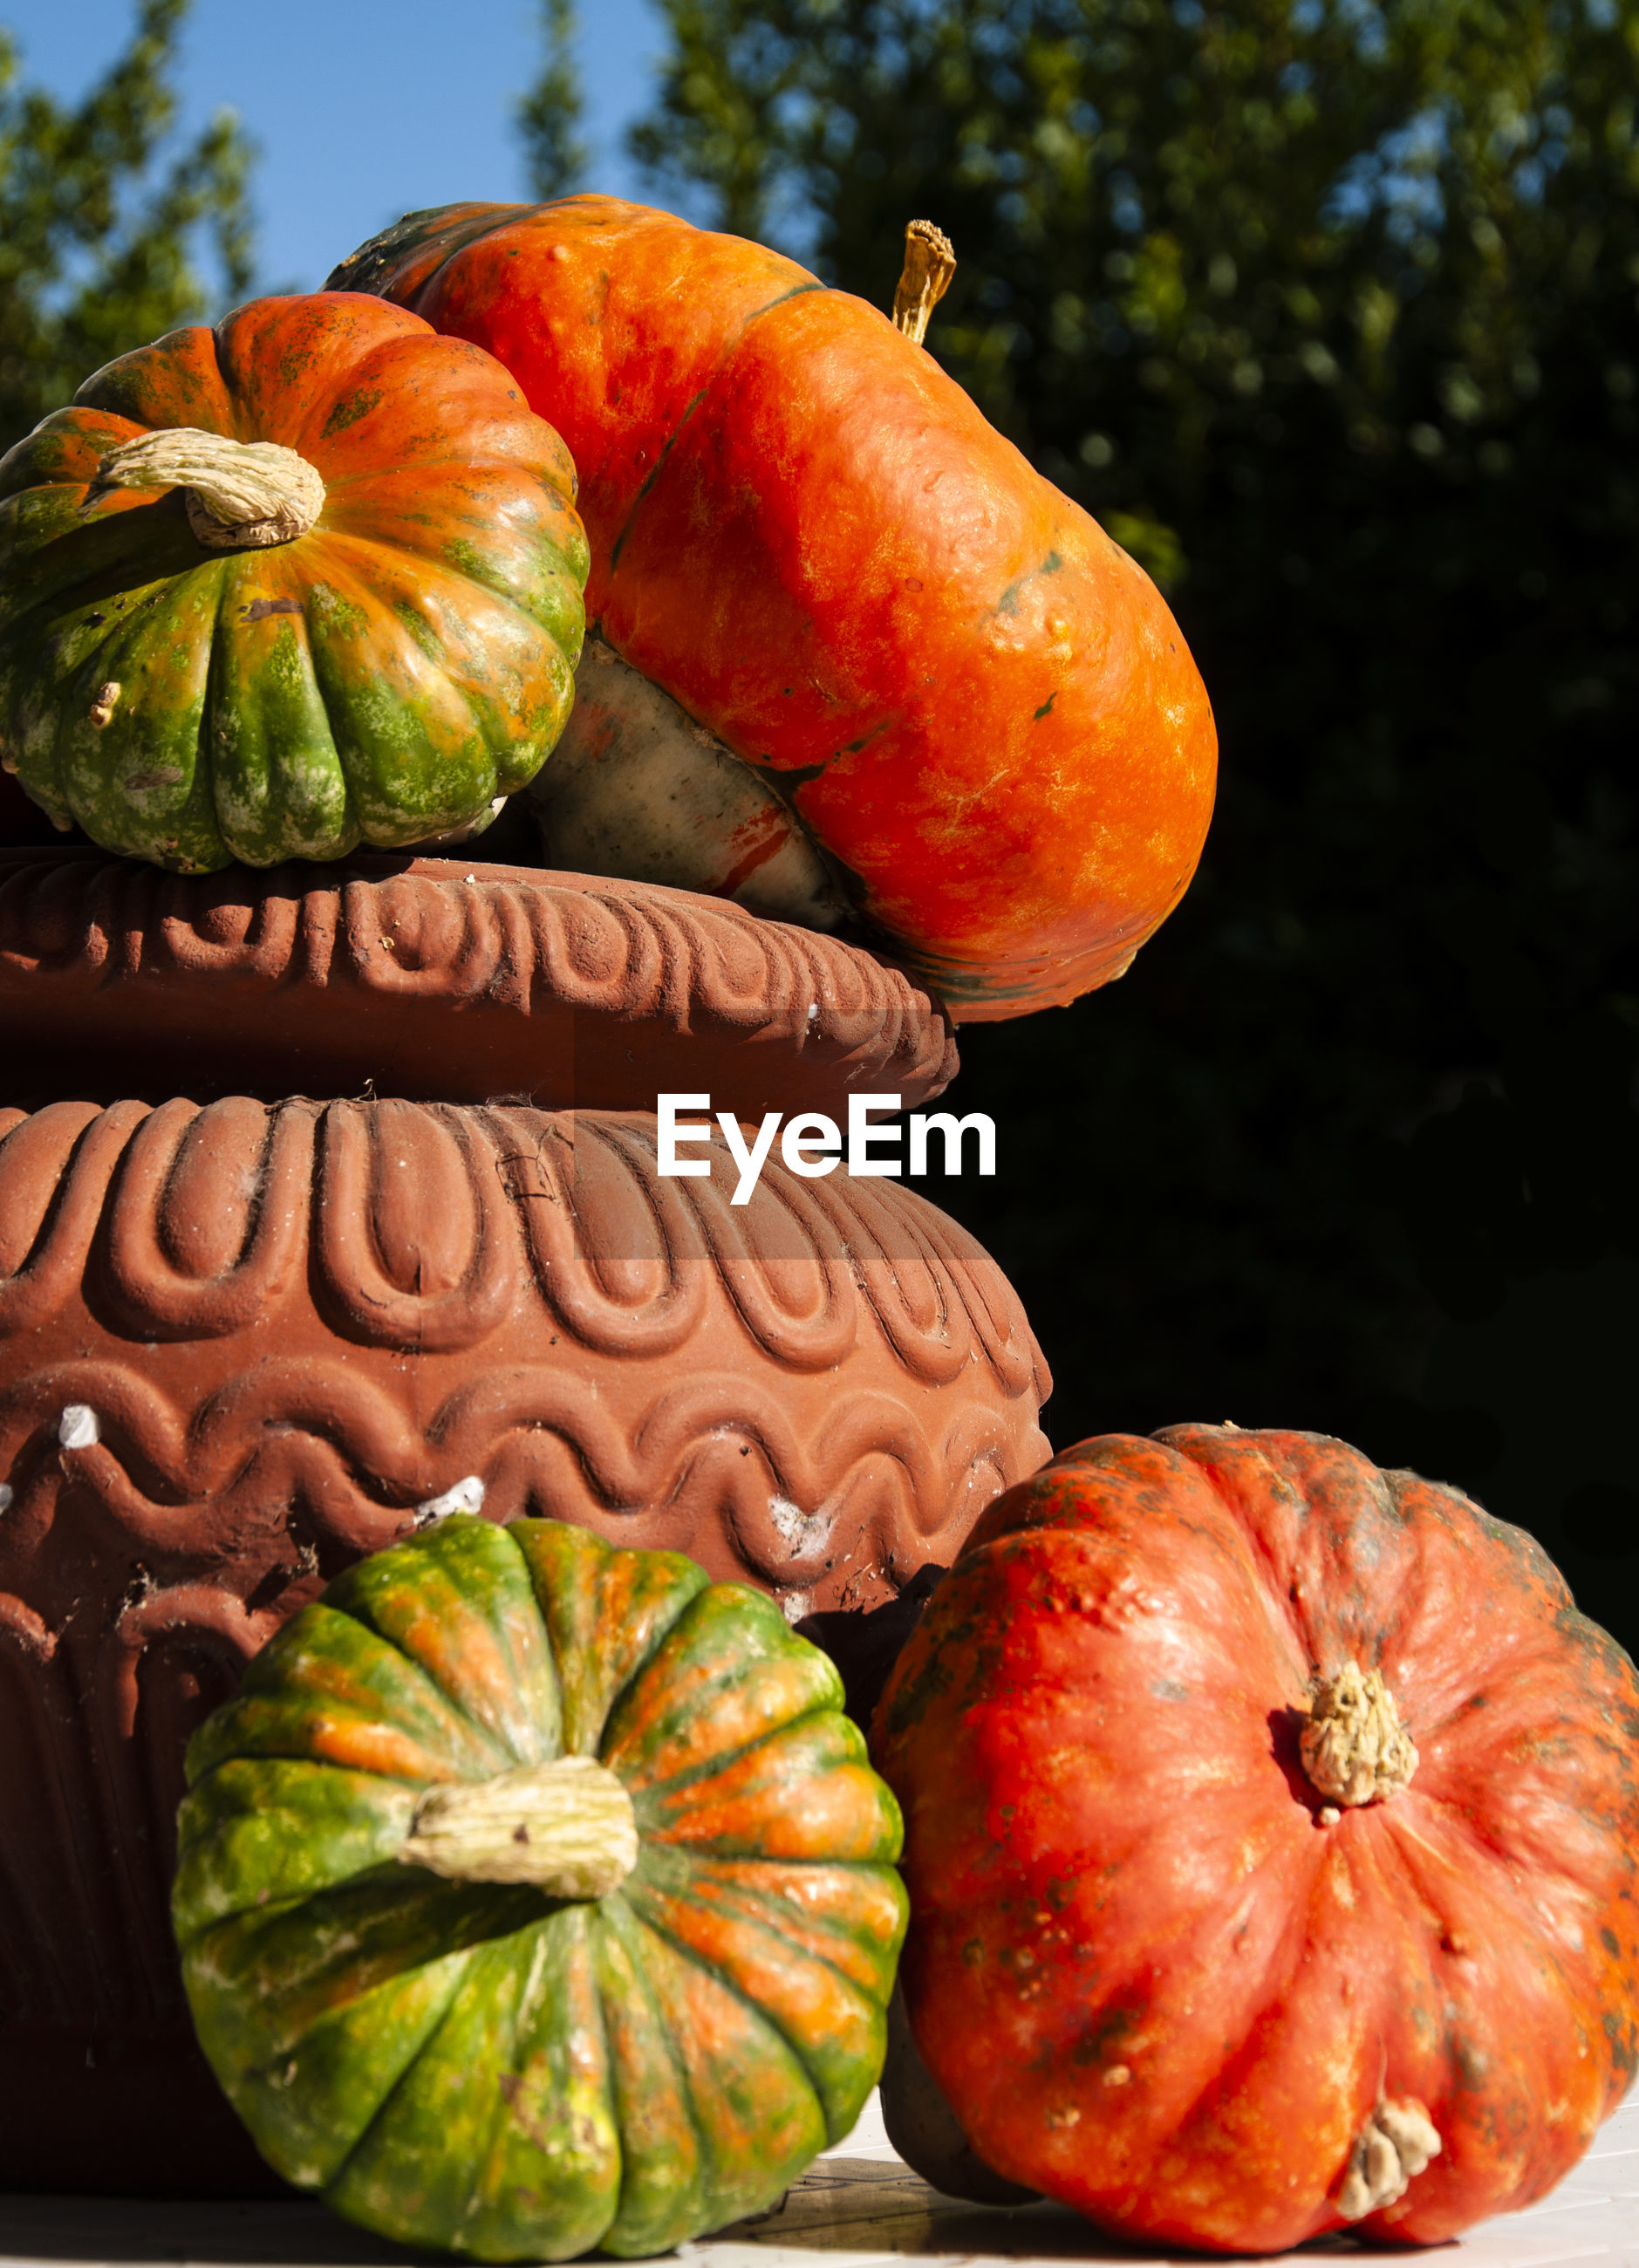 CLOSE-UP OF PUMPKINS IN CONTAINER